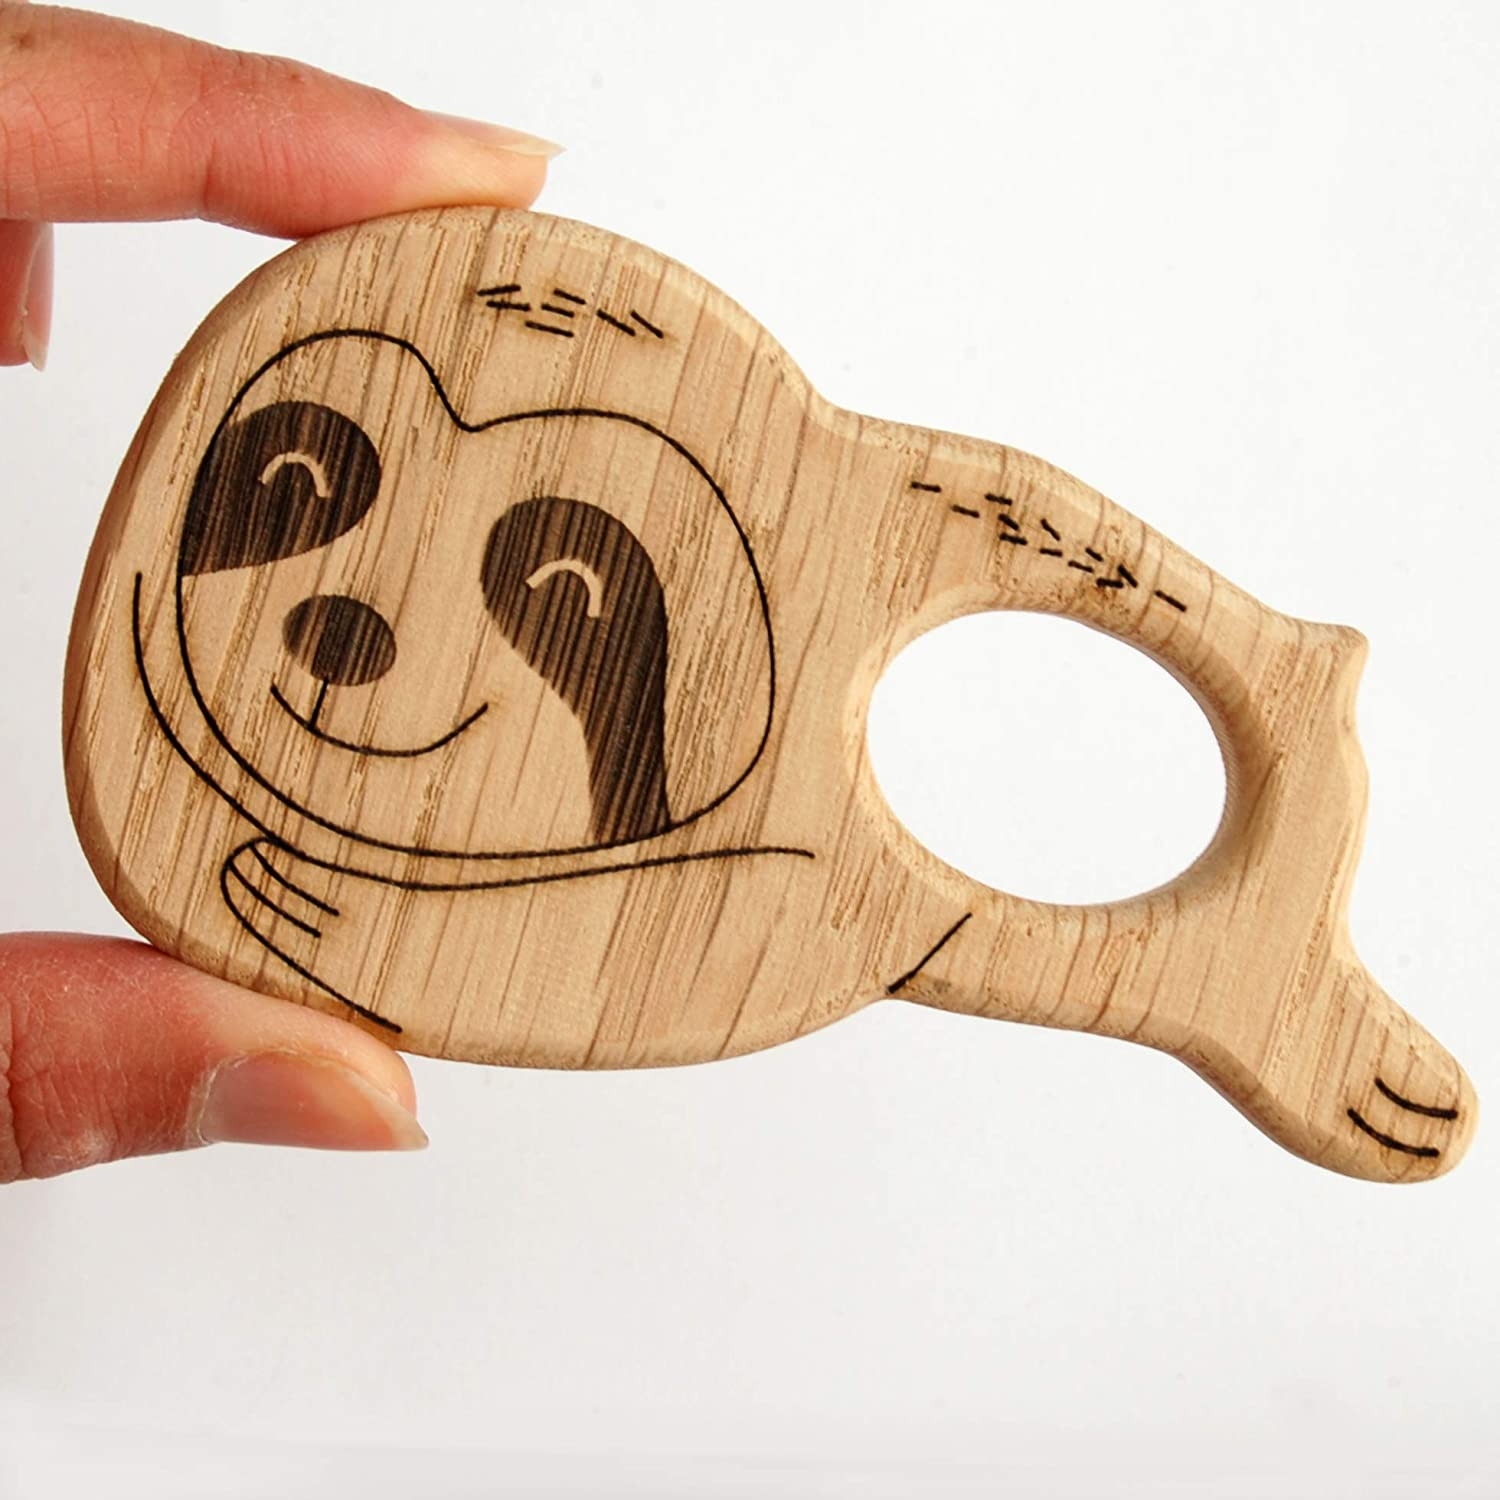 Sloth Wooden Teether Toy for Baby Teething Ring